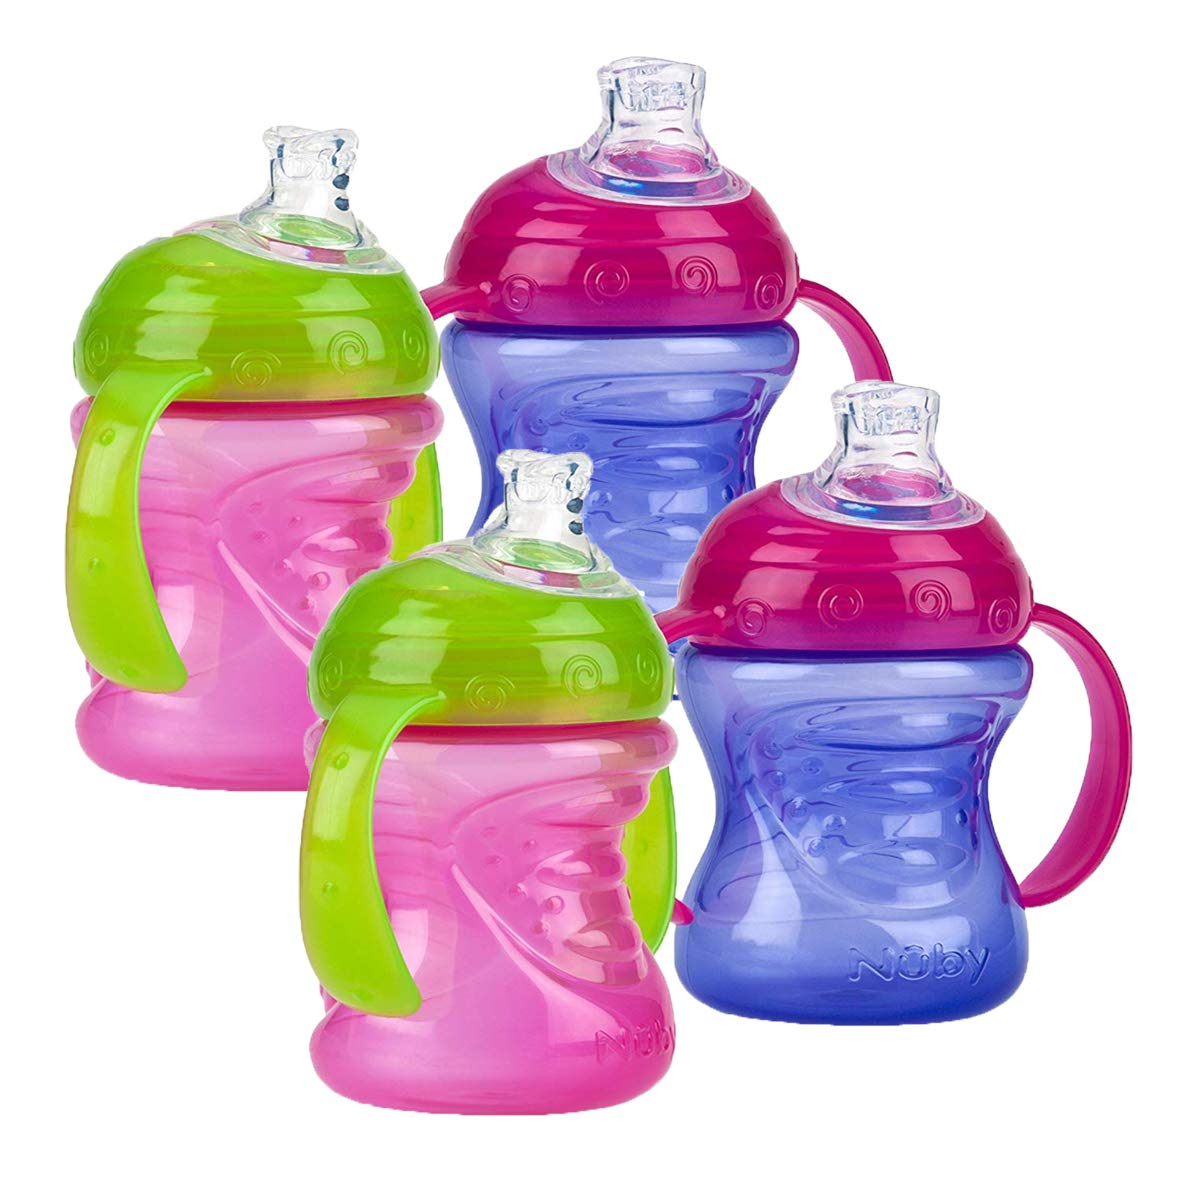 Nuby Two-Handle No-Spill Super Spout Grip N' Sip Cups, 8 Ounce (4 Count, Pink/Purple)   by Nuby